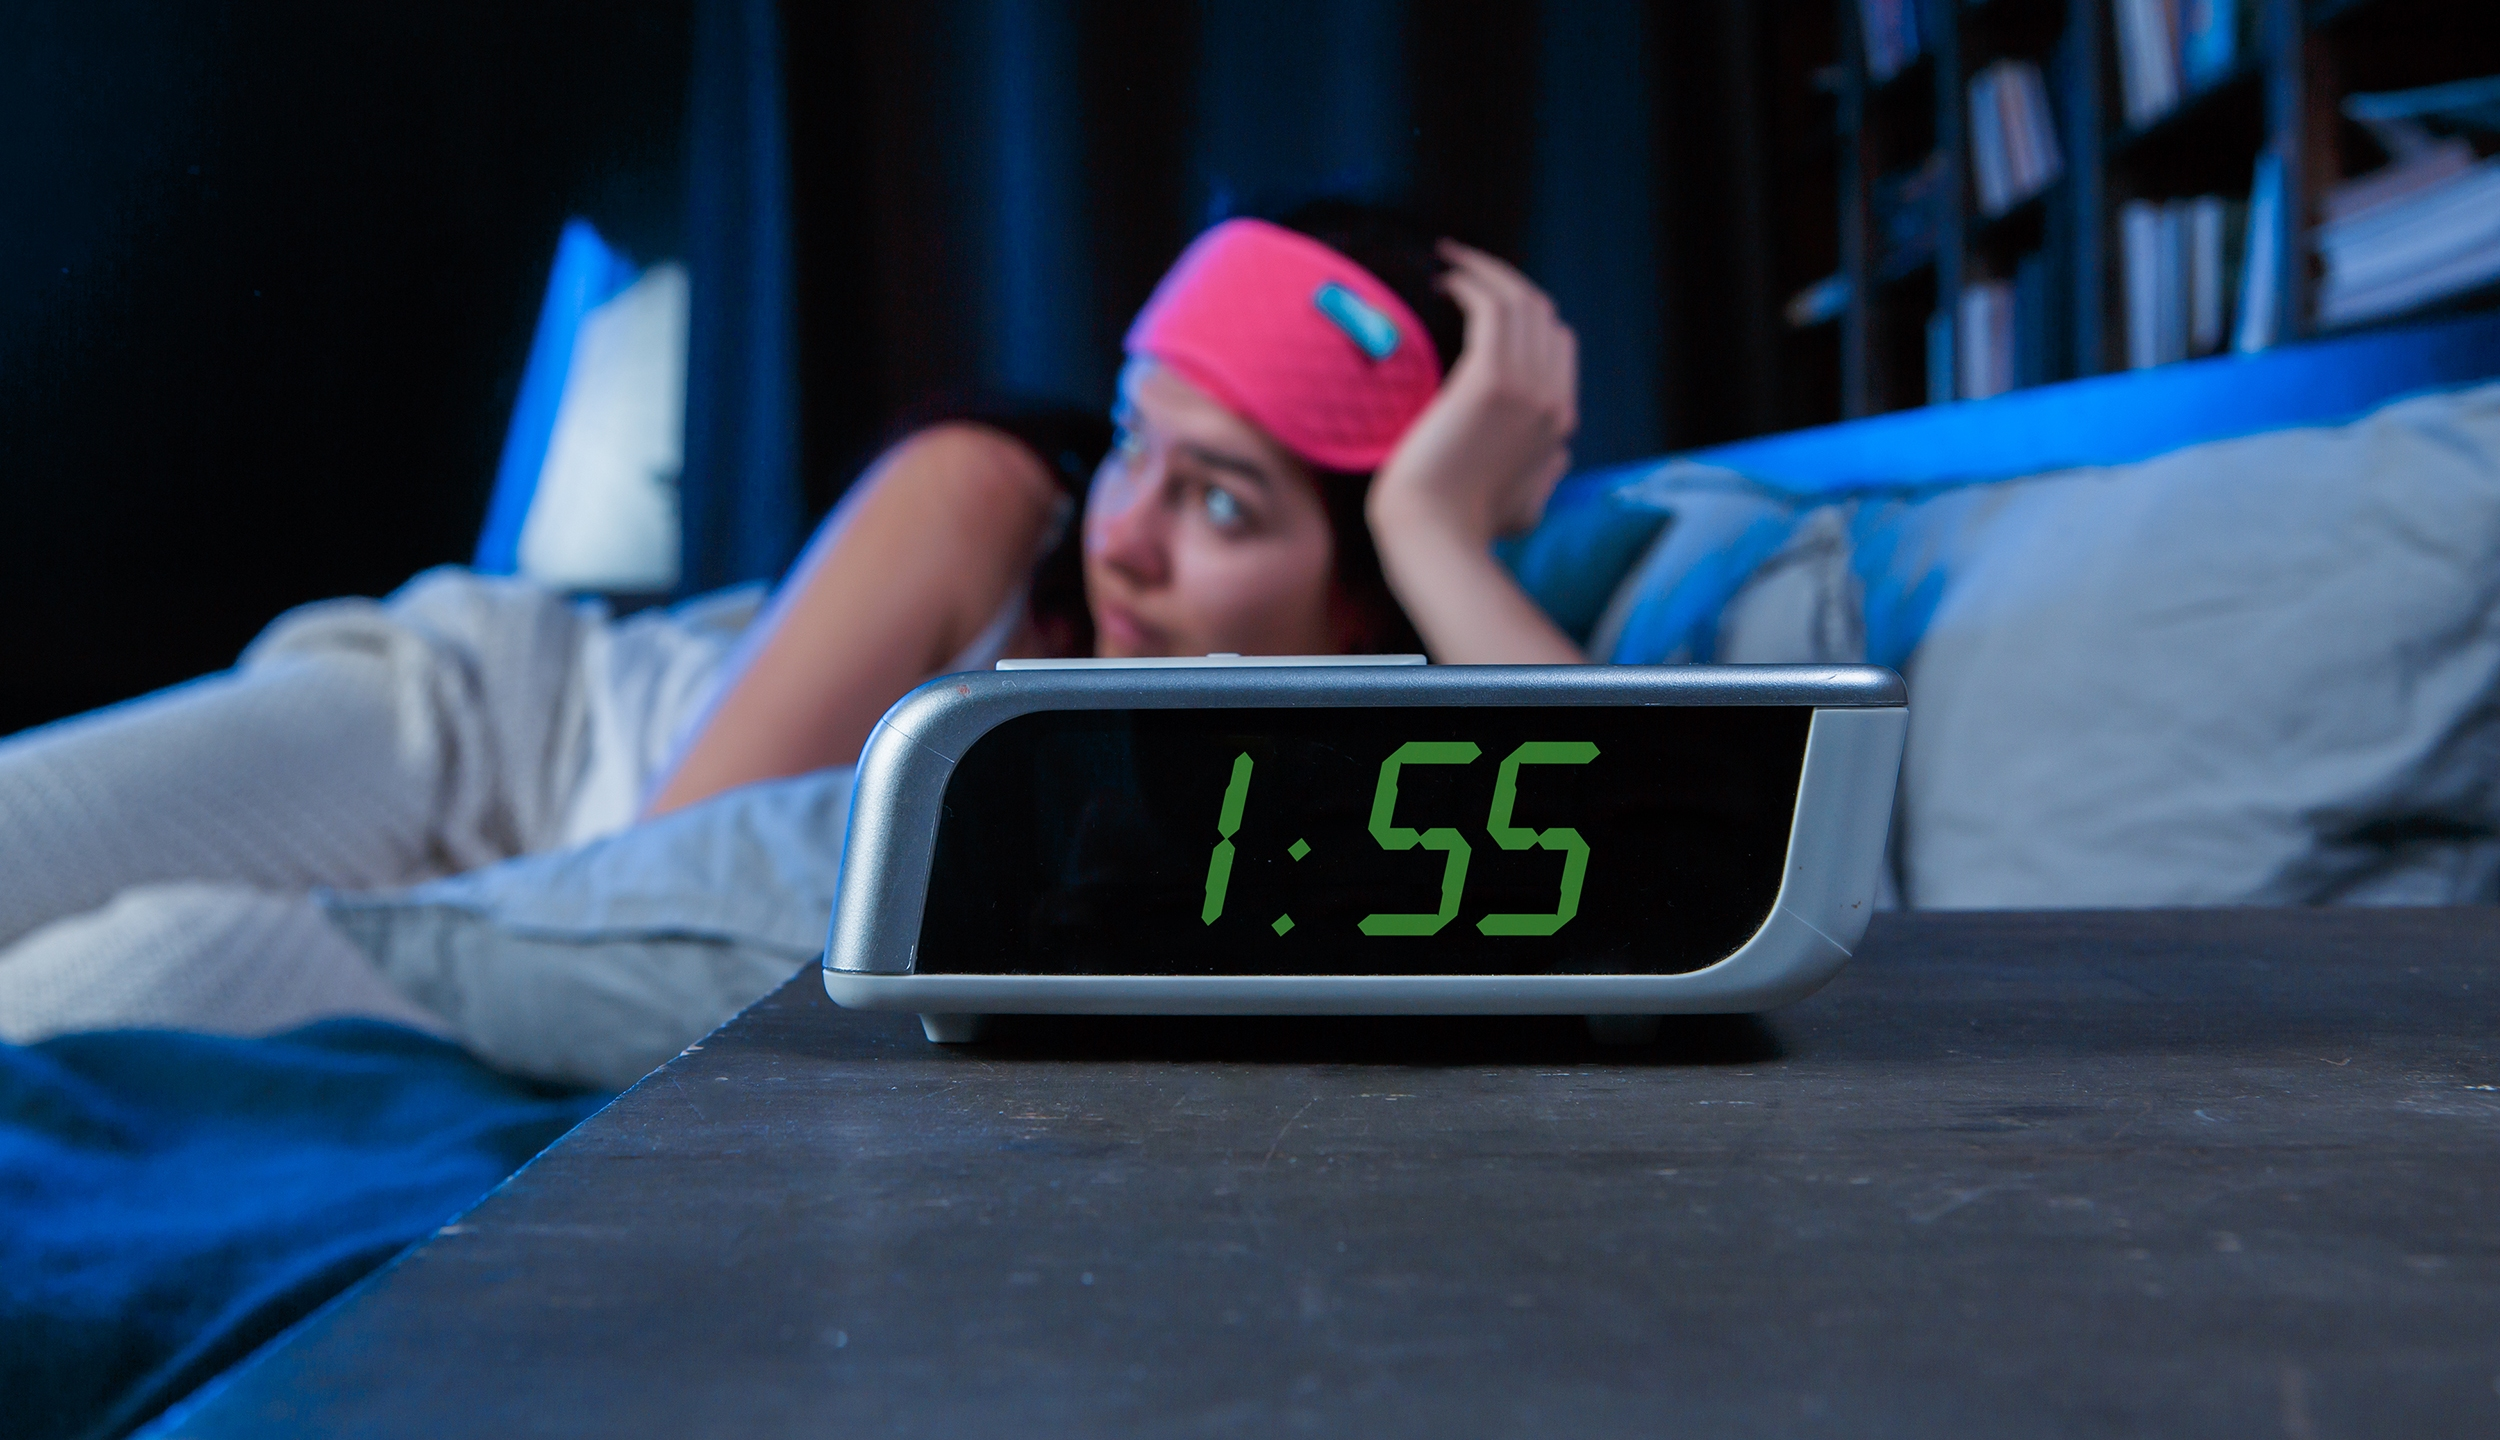 Changing the clocks is a bad idea — and it should end, sleep experts say. (Shtterstock via CNN Wire)